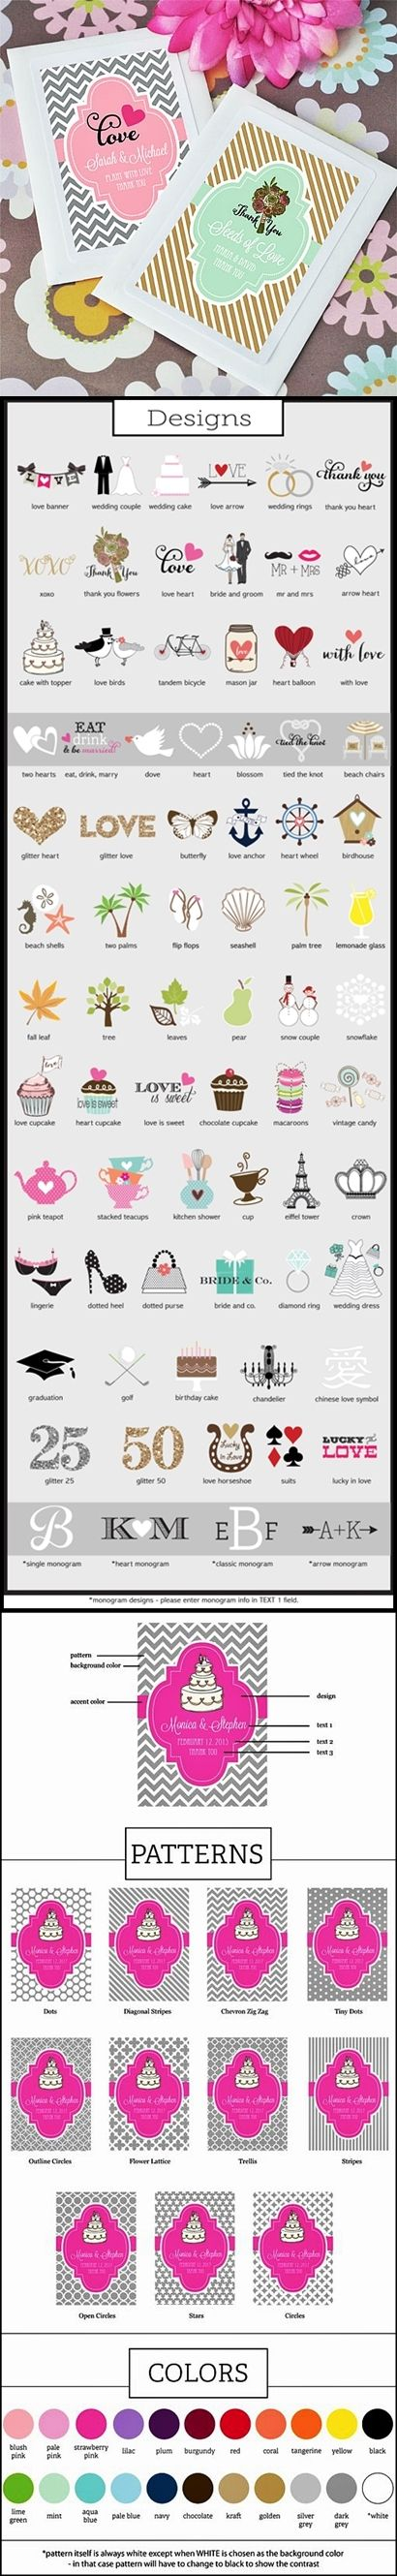 46 best Butterfly Wedding Favors images on Pinterest | Wedding ...